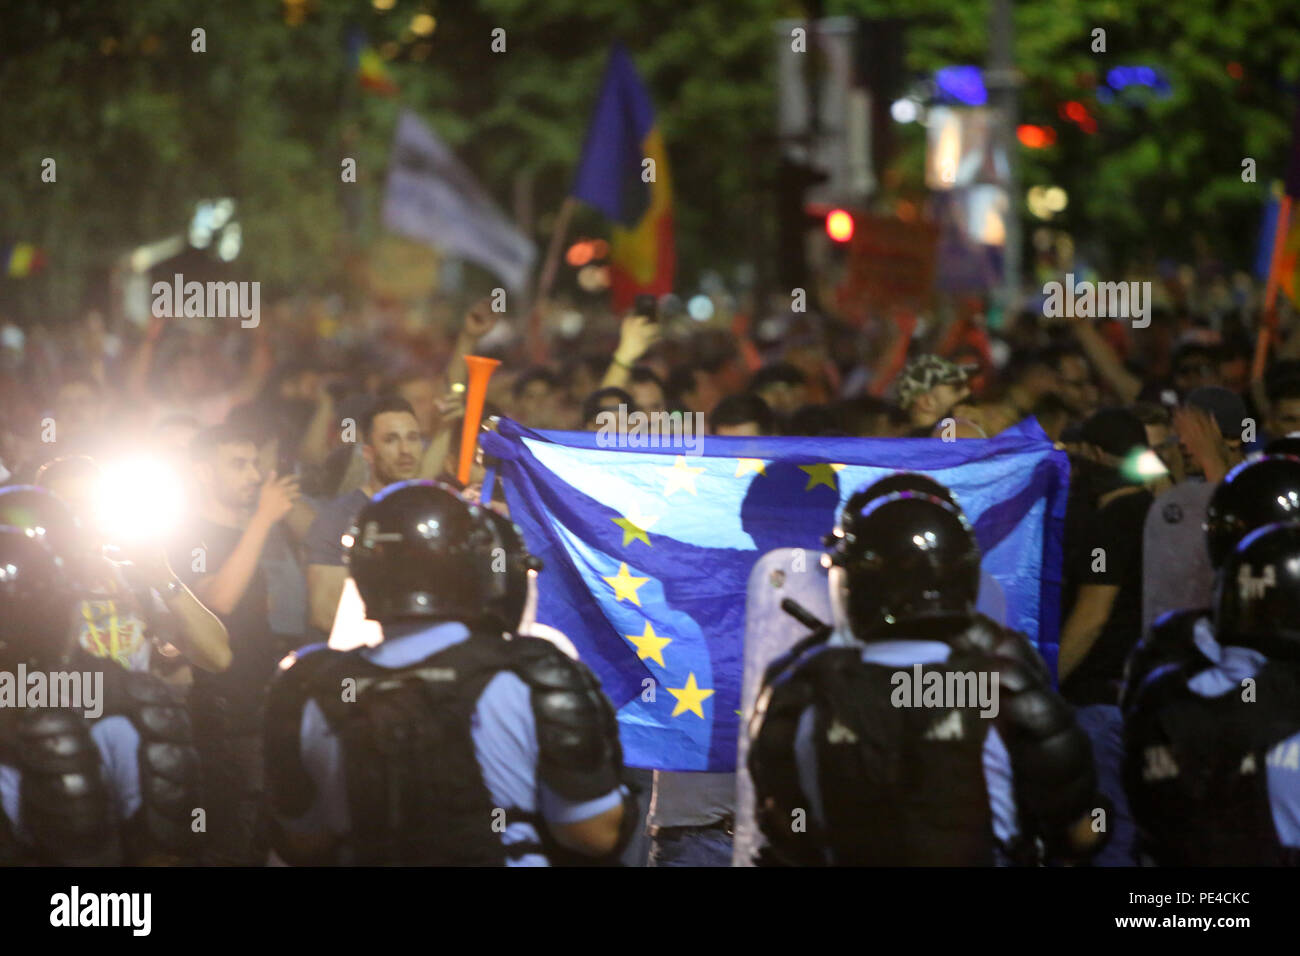 Bucharest, Romania - August 10, 2018: Tens of thousands of people are participating at violent anti-government protest in Bucharest. - Stock Image